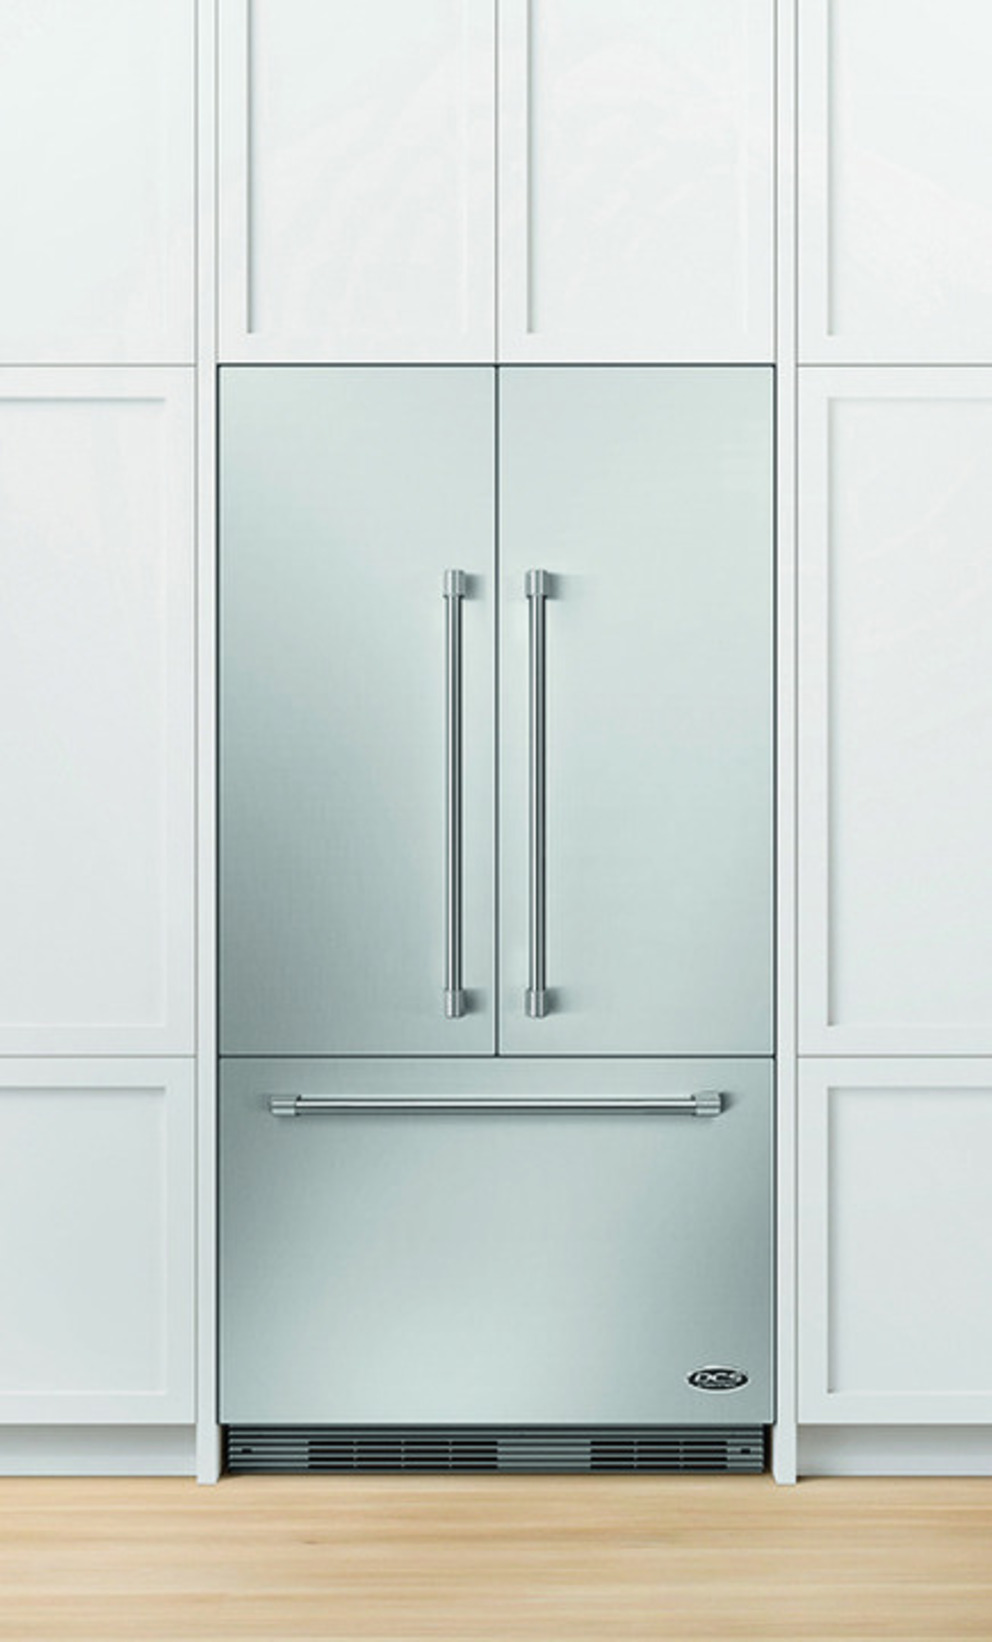 Fridges DCS RS36A72JC1 + RD3672C (72'' DCS)